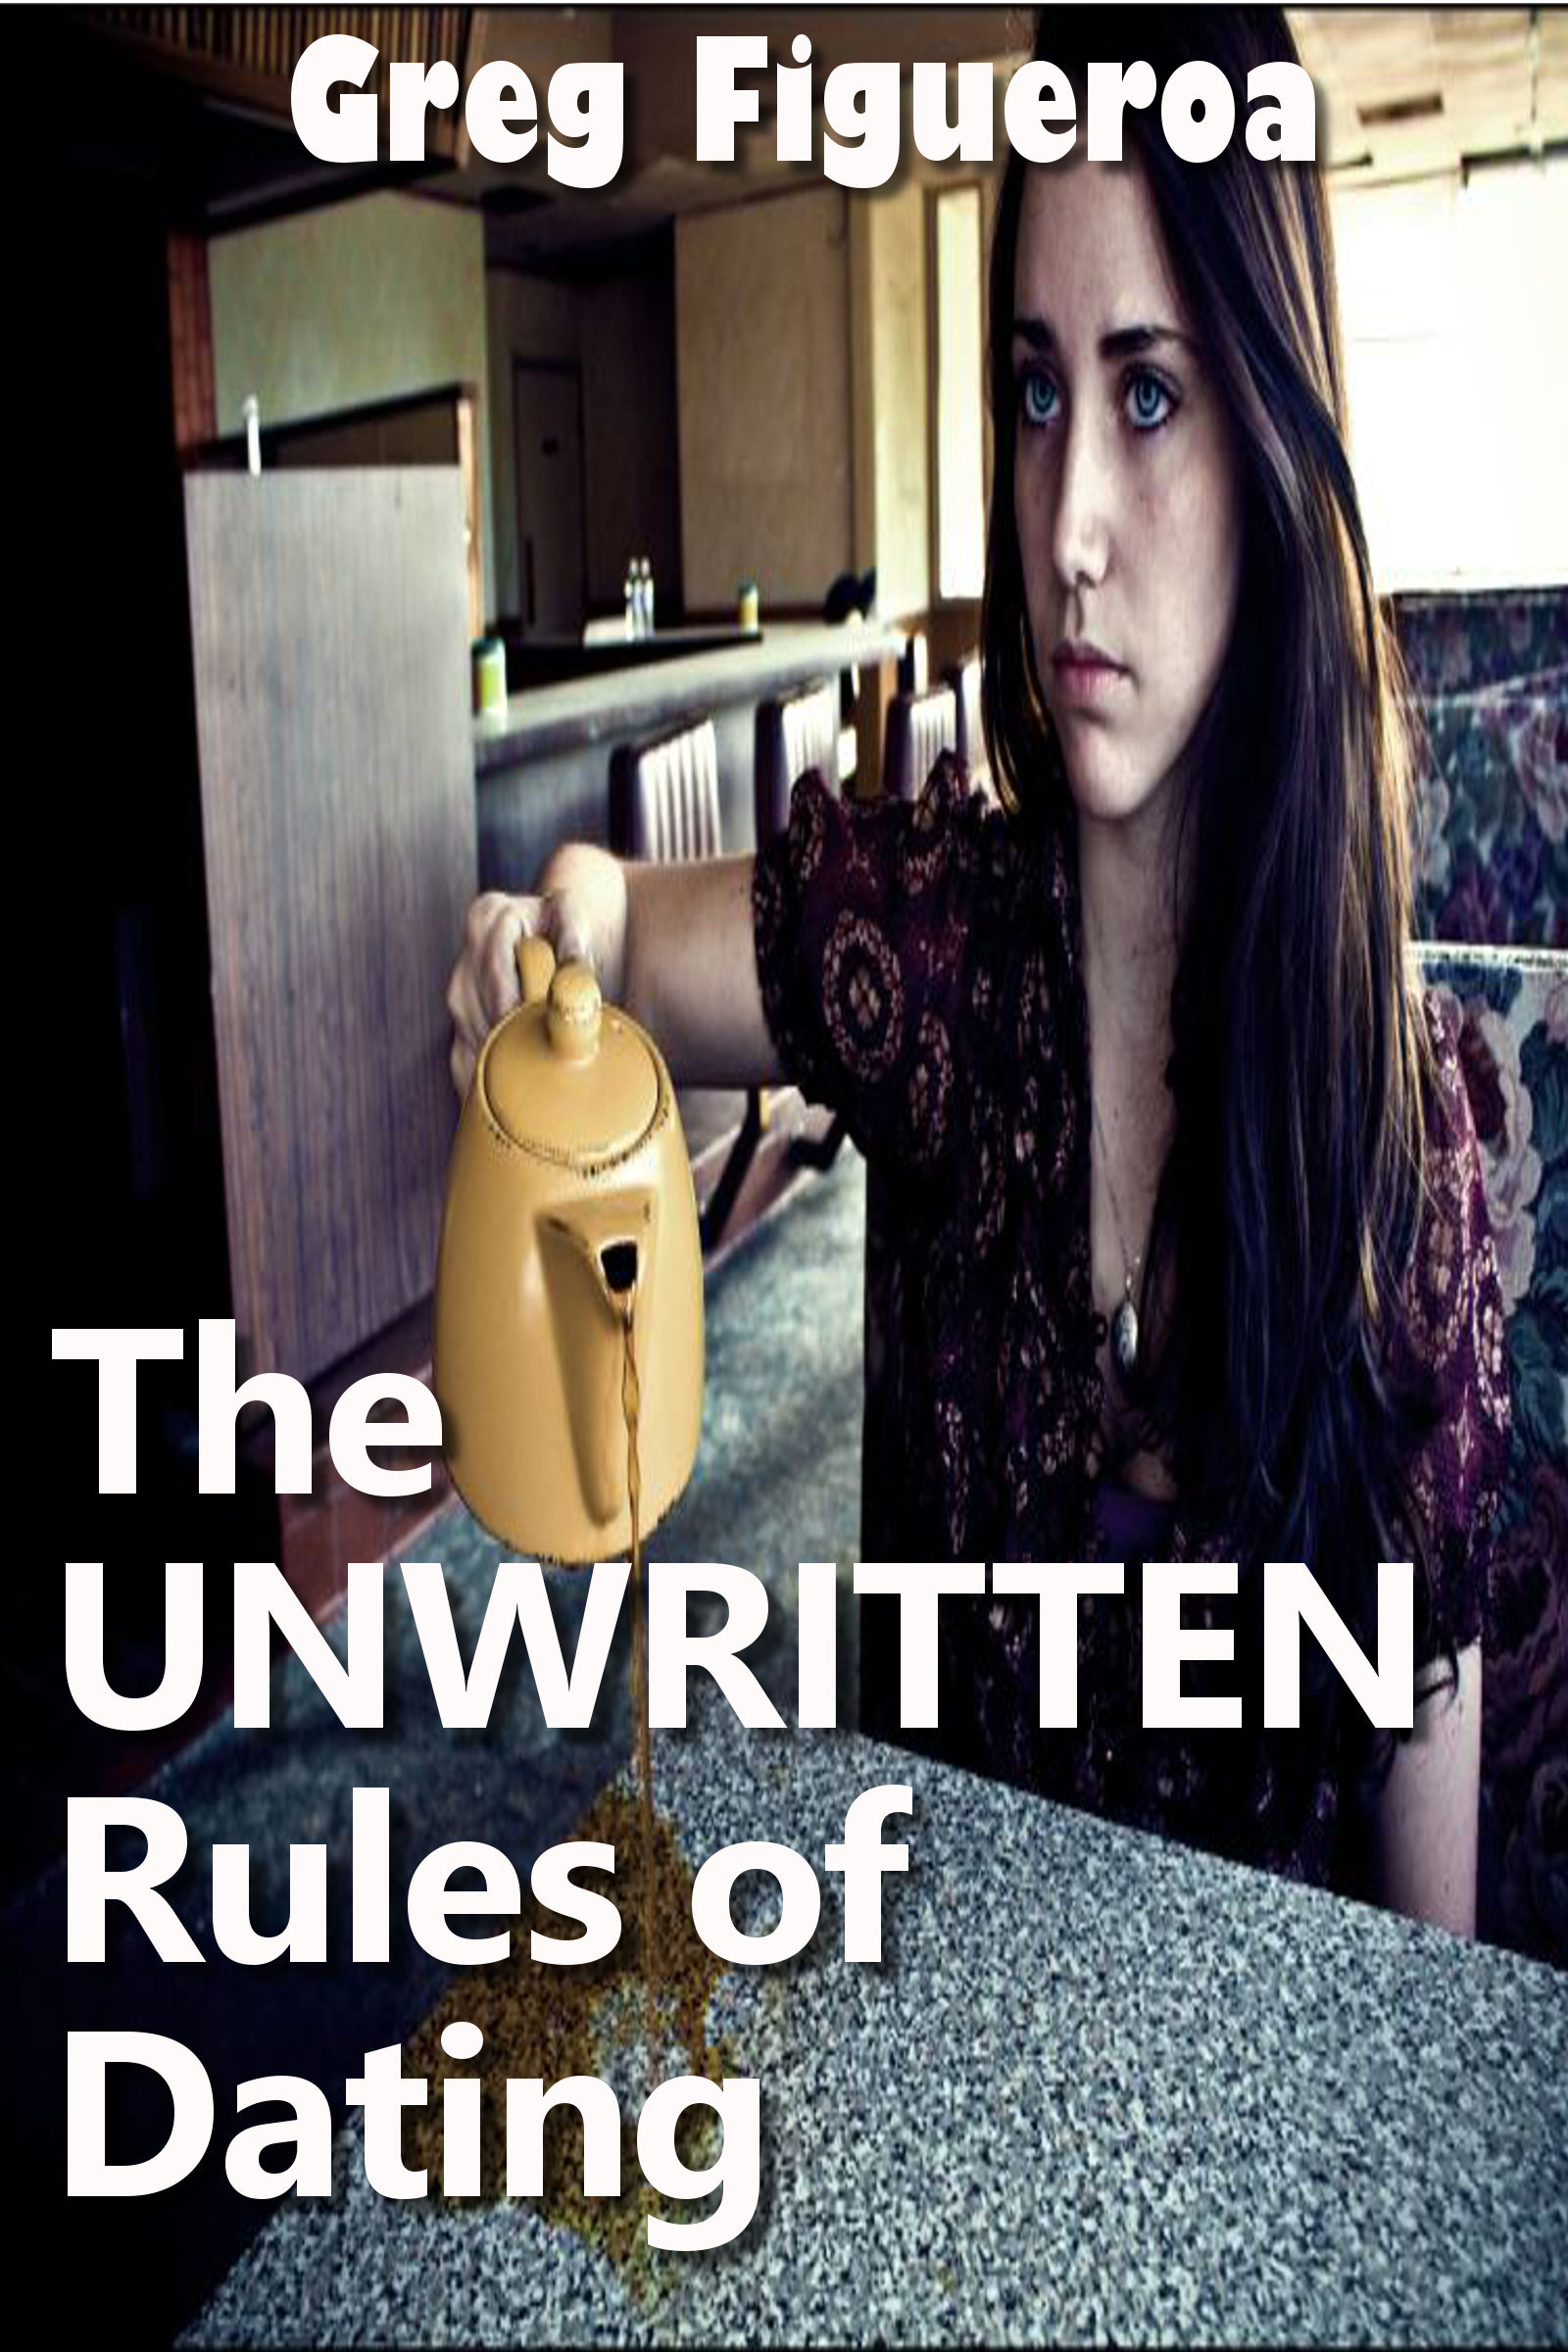 Unwritten rules of dating for women